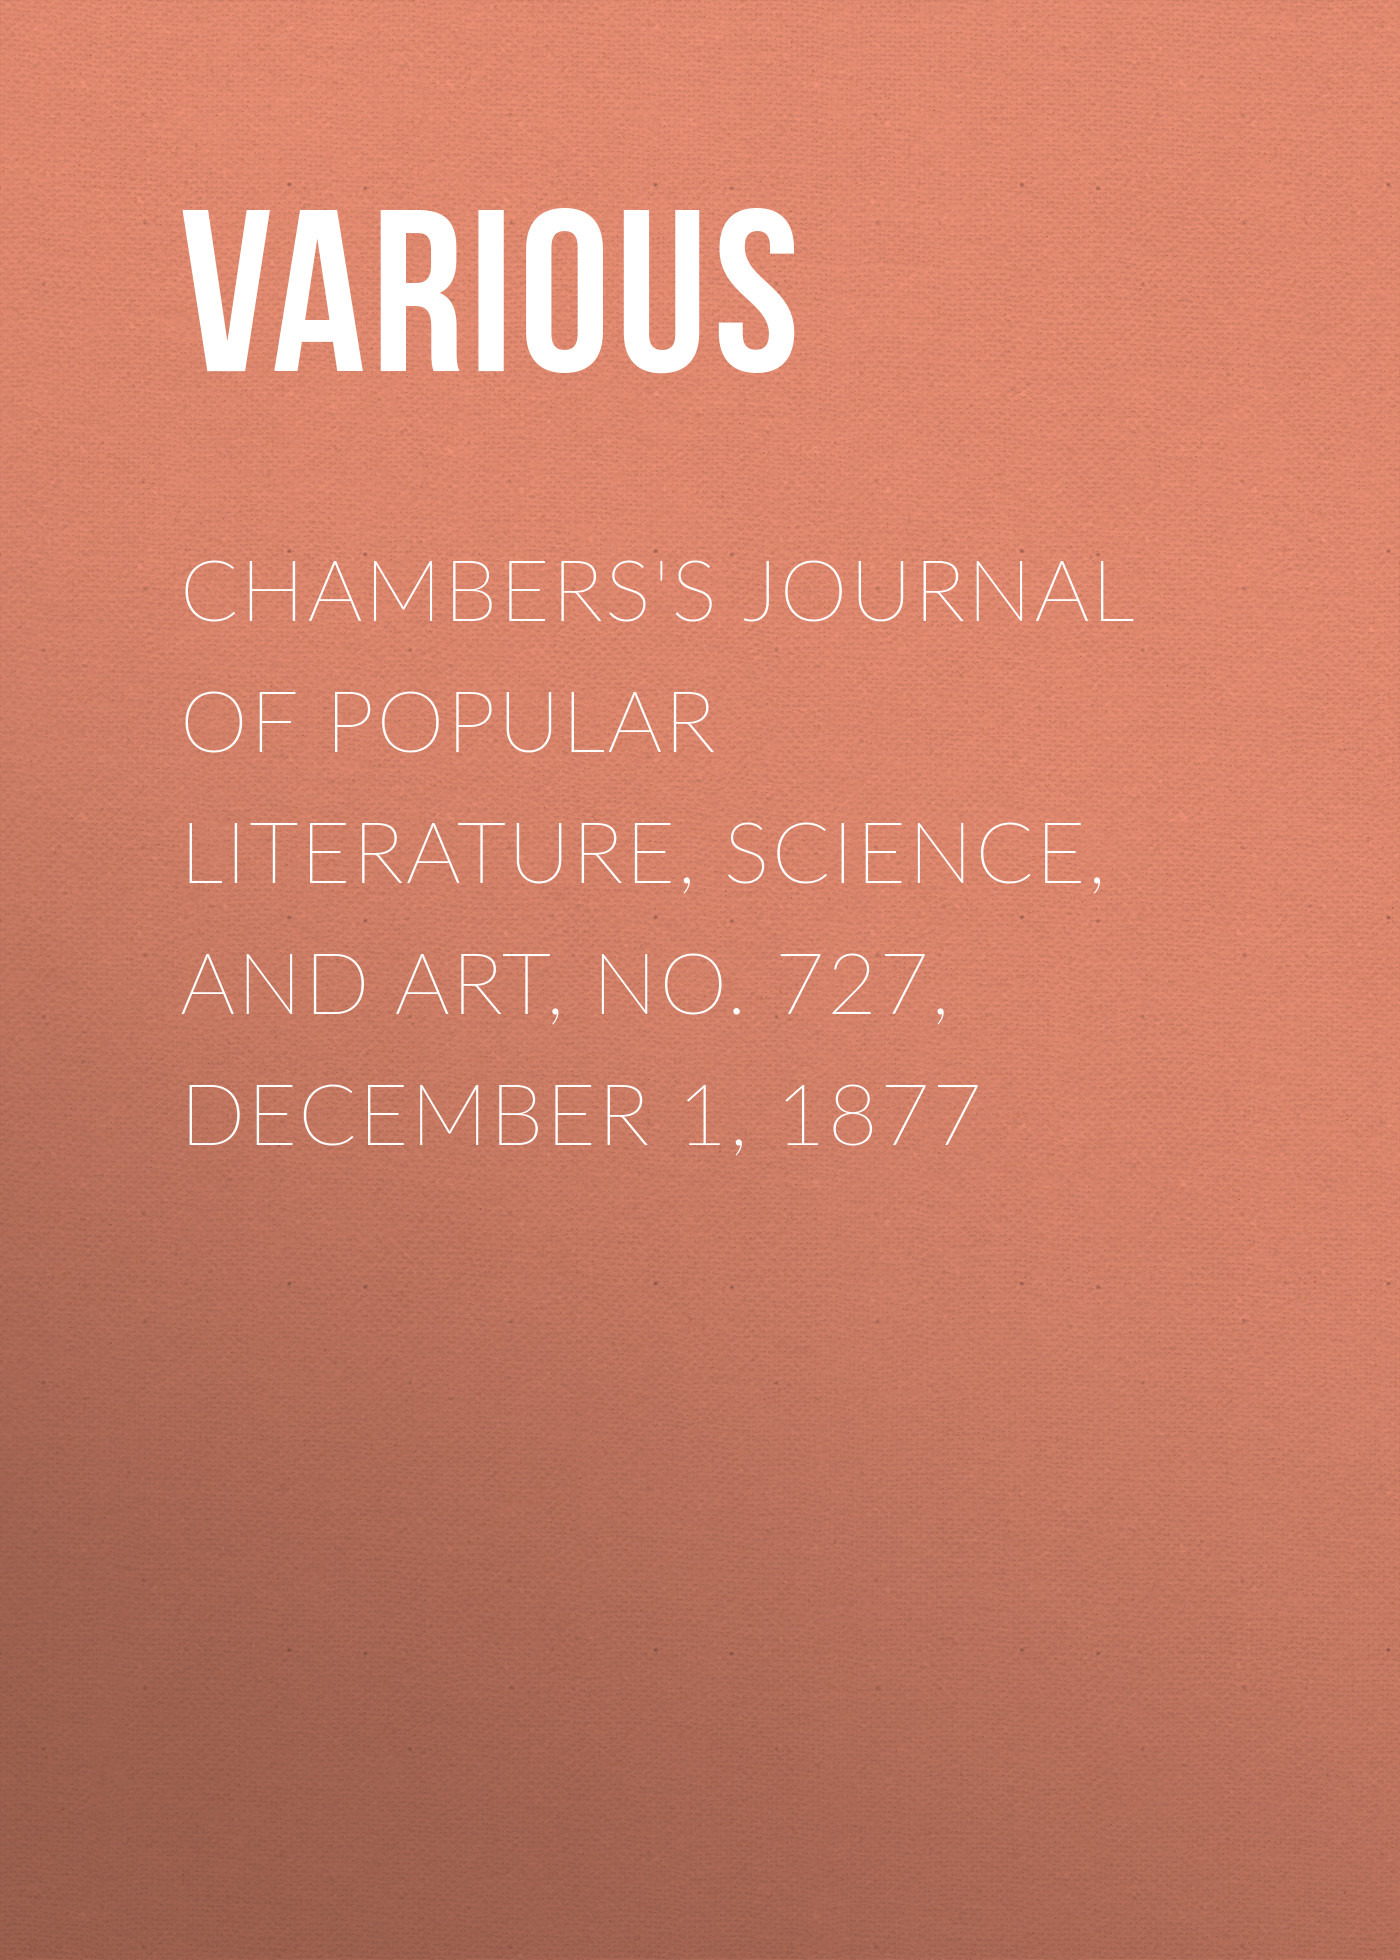 Chambers's Journal of Popular Literature, Science, and Art, No. 727, December 1, 1877